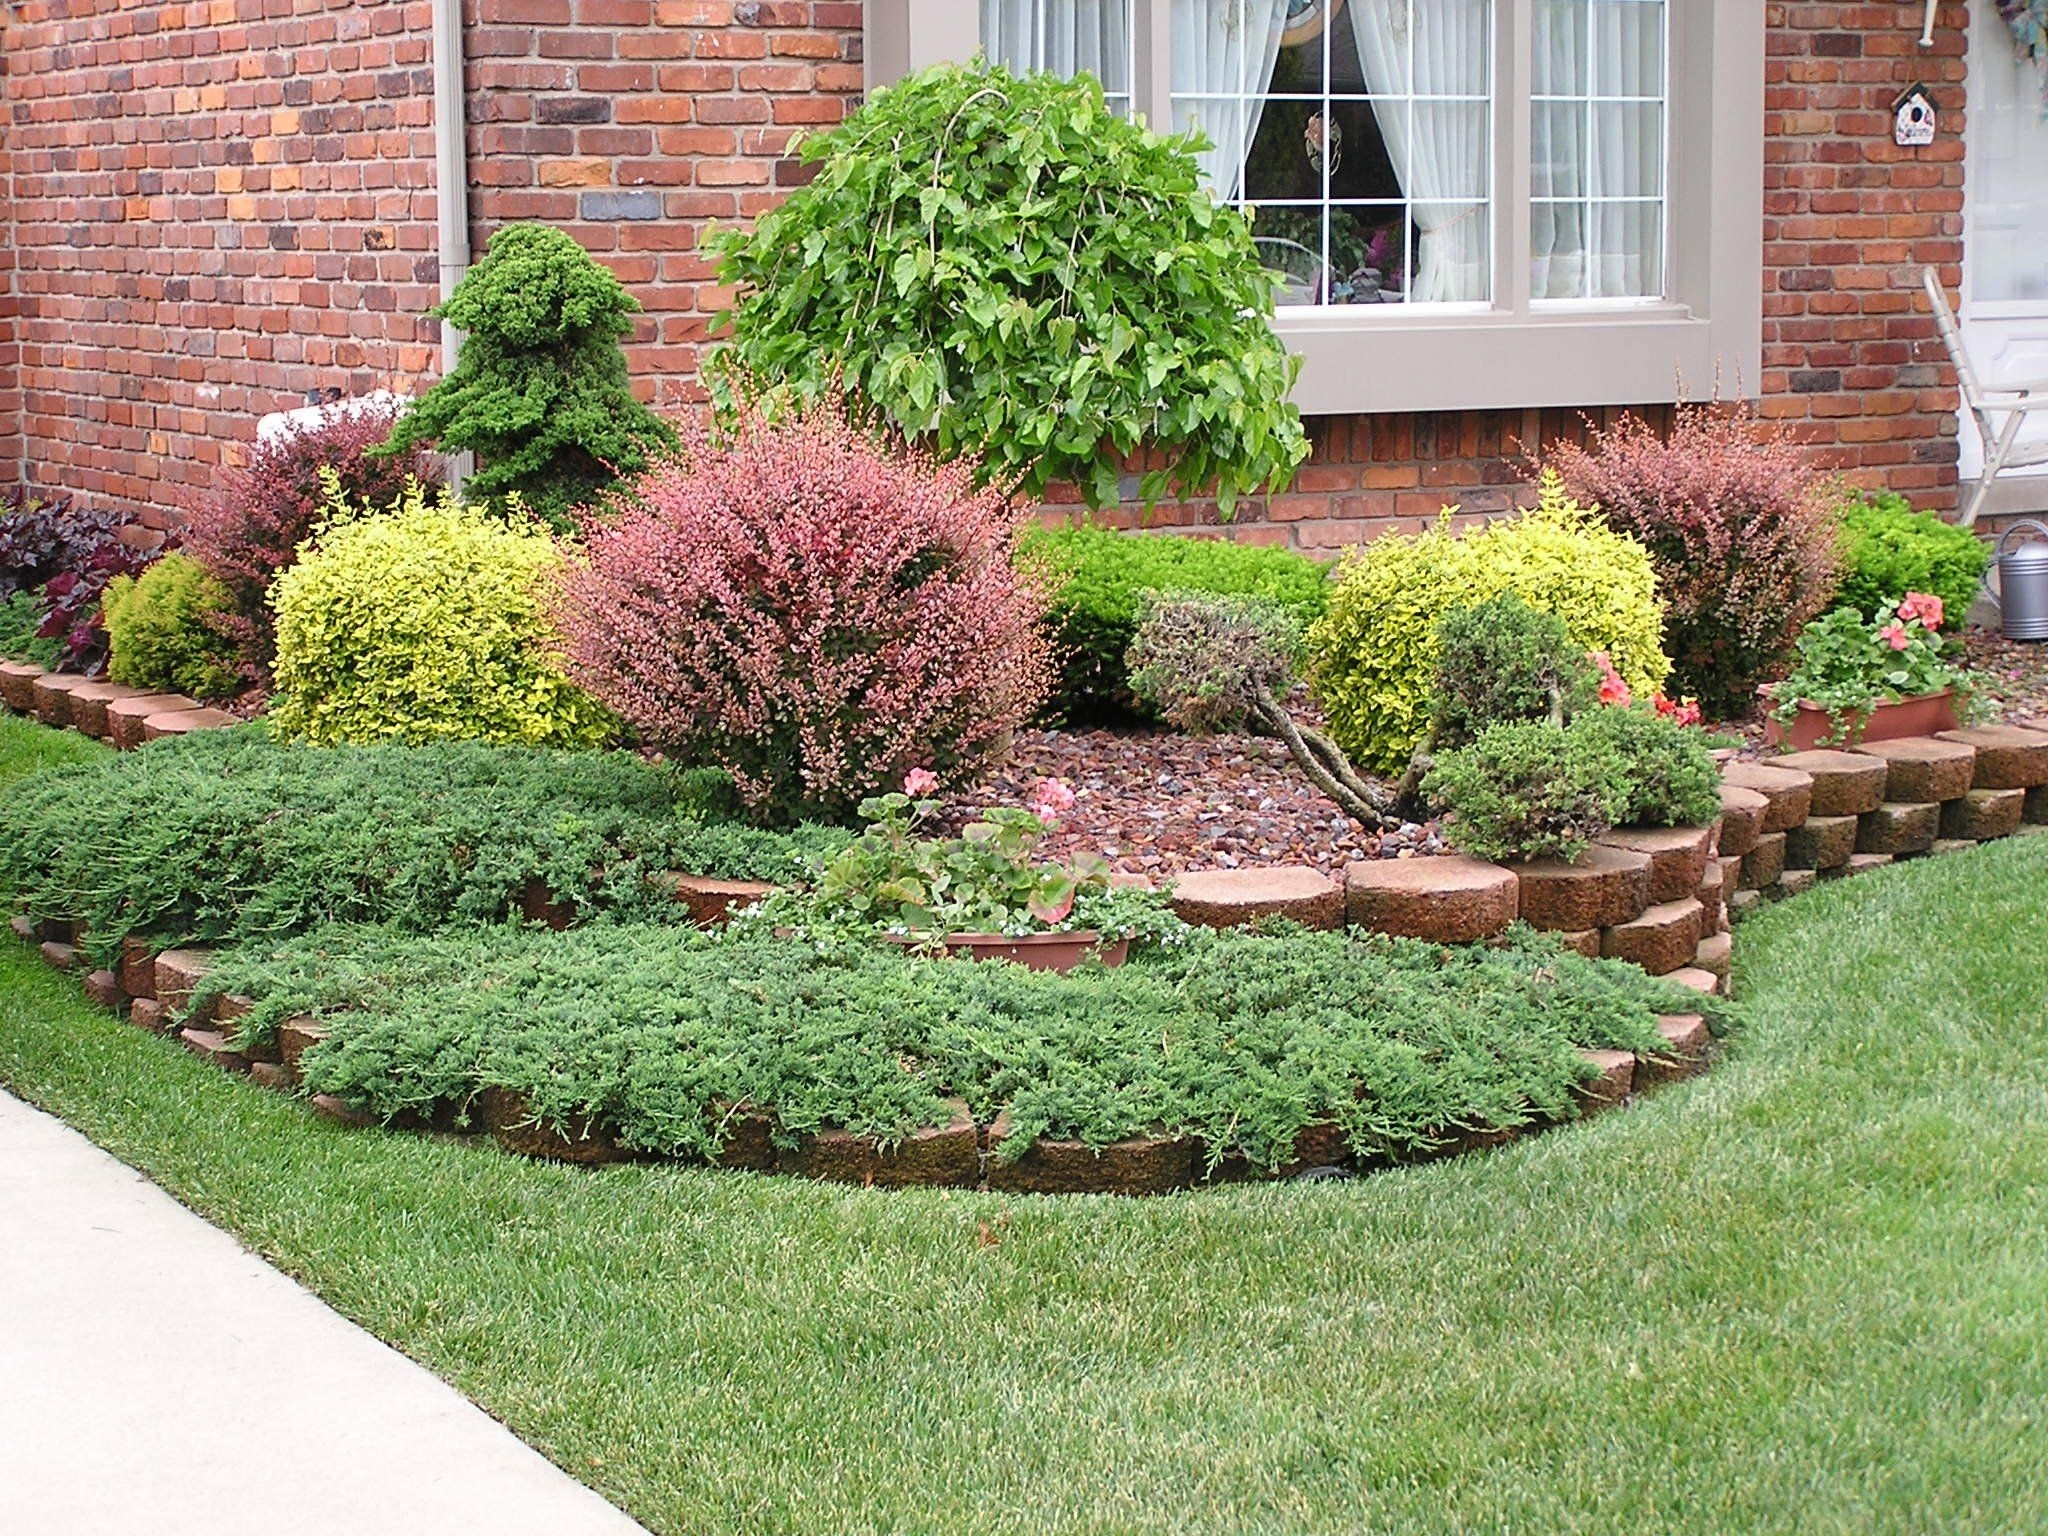 Image of: Midwest Landscaping Ideas Front Yard Amys Office Intended For Midwest Landscaping Midwest Landscaping Ideas